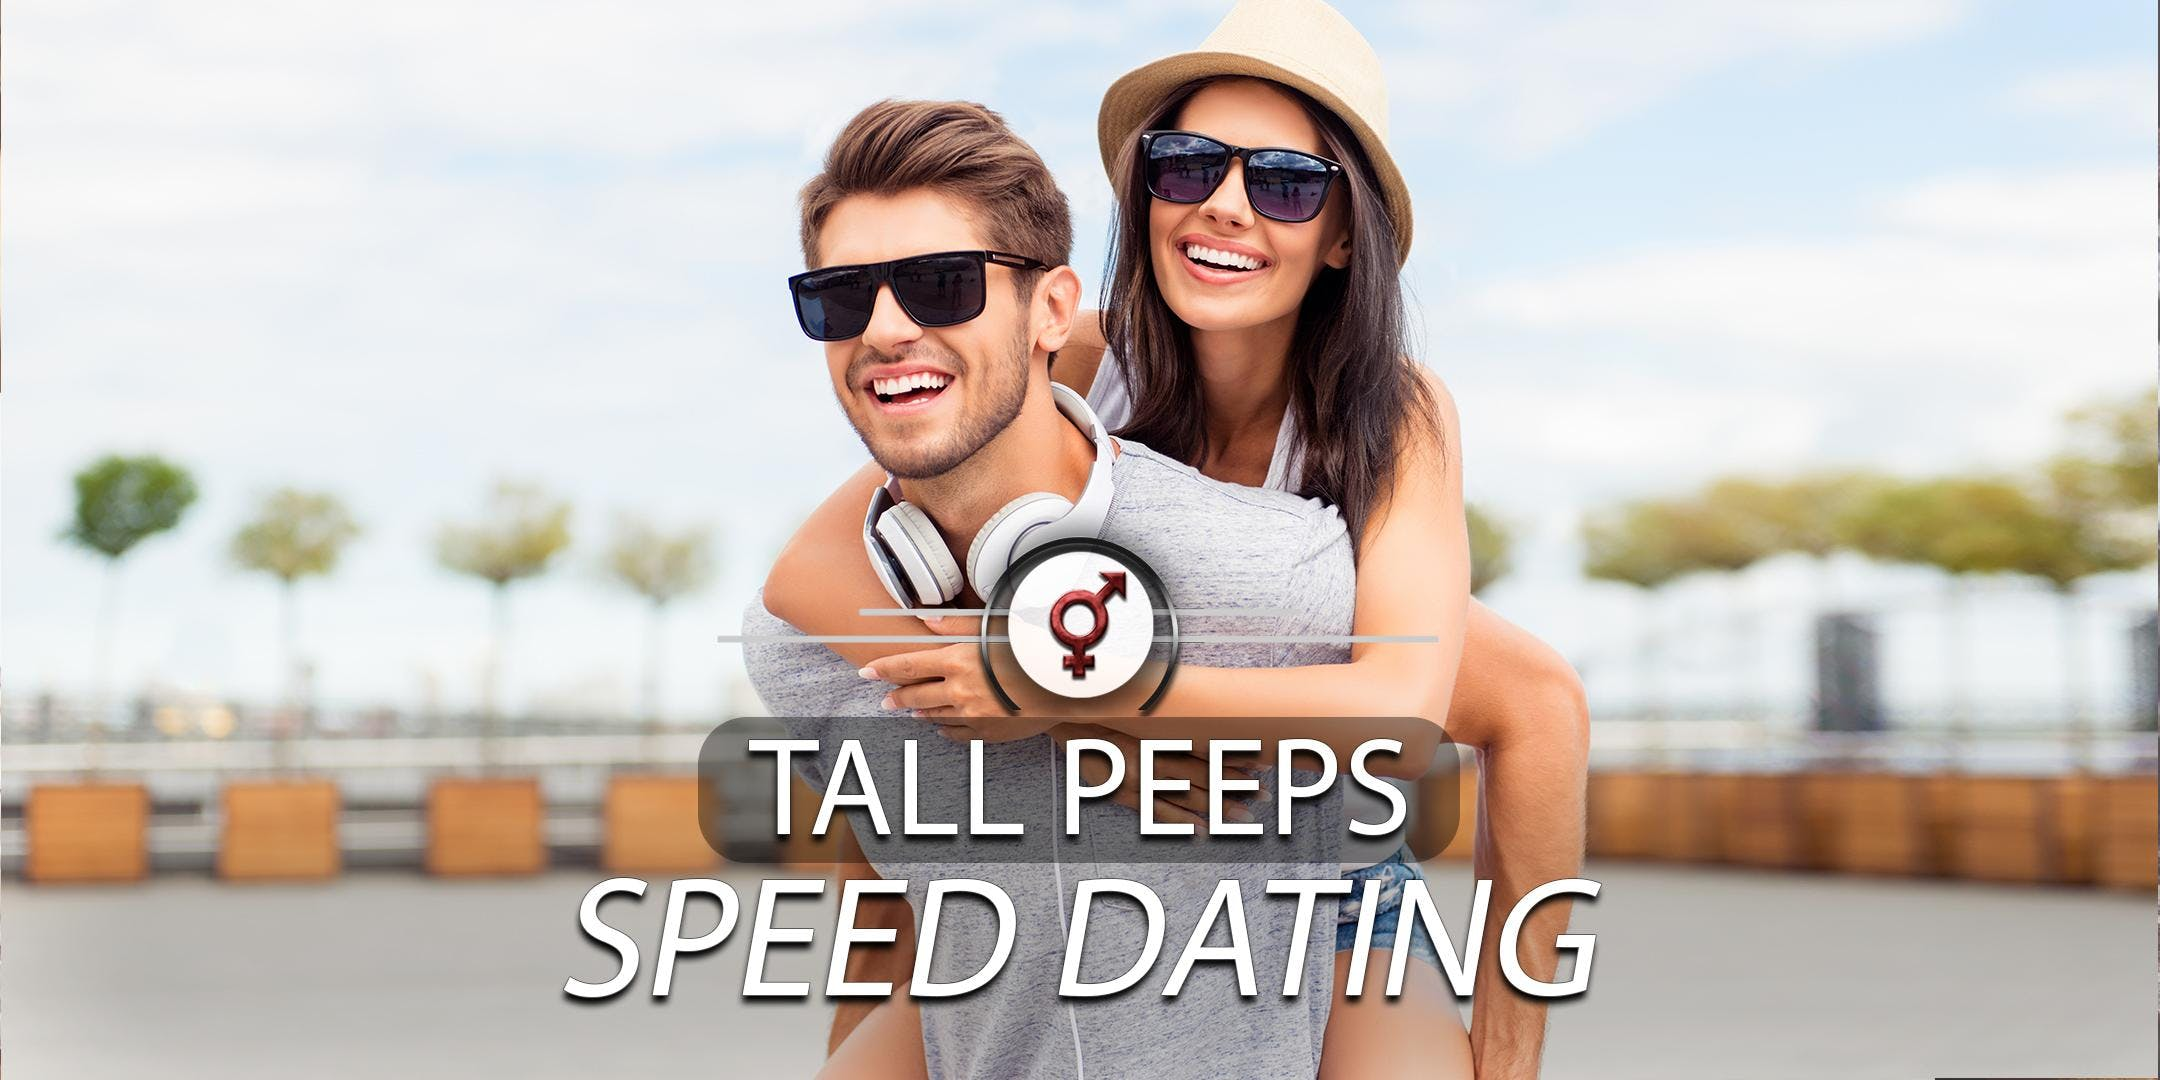 chatting dating site apps